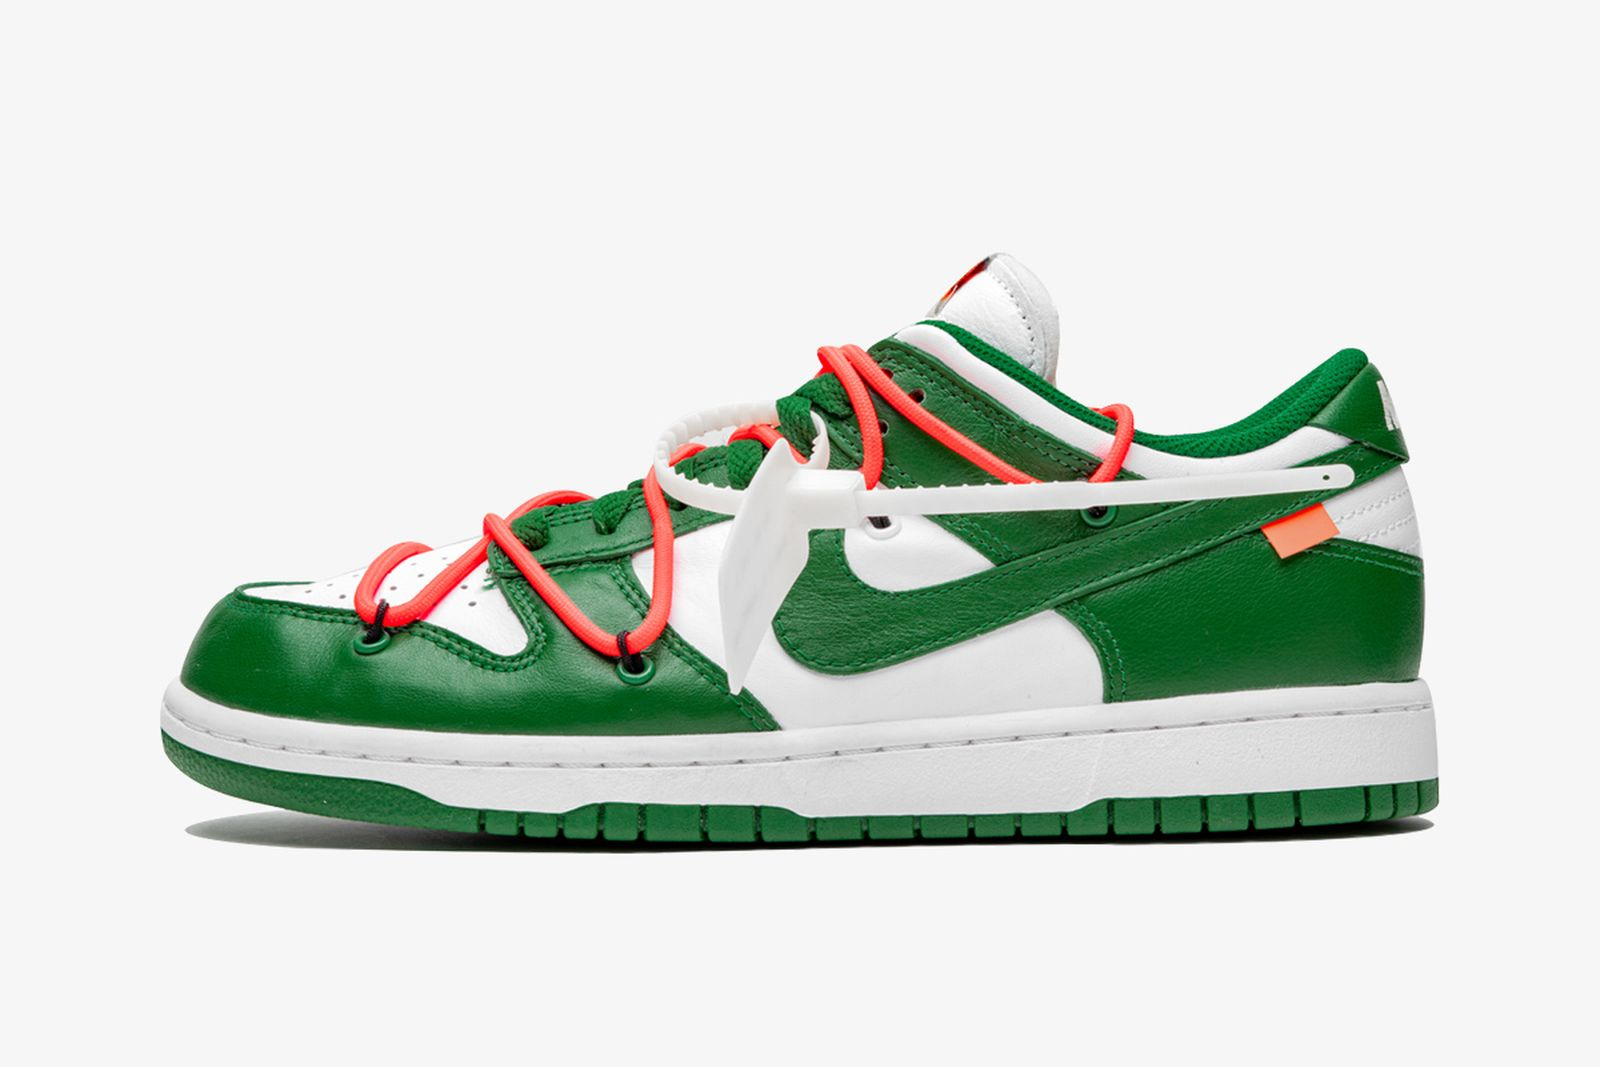 off-white-nike-dunk-low-green-release-date-price-sg-01